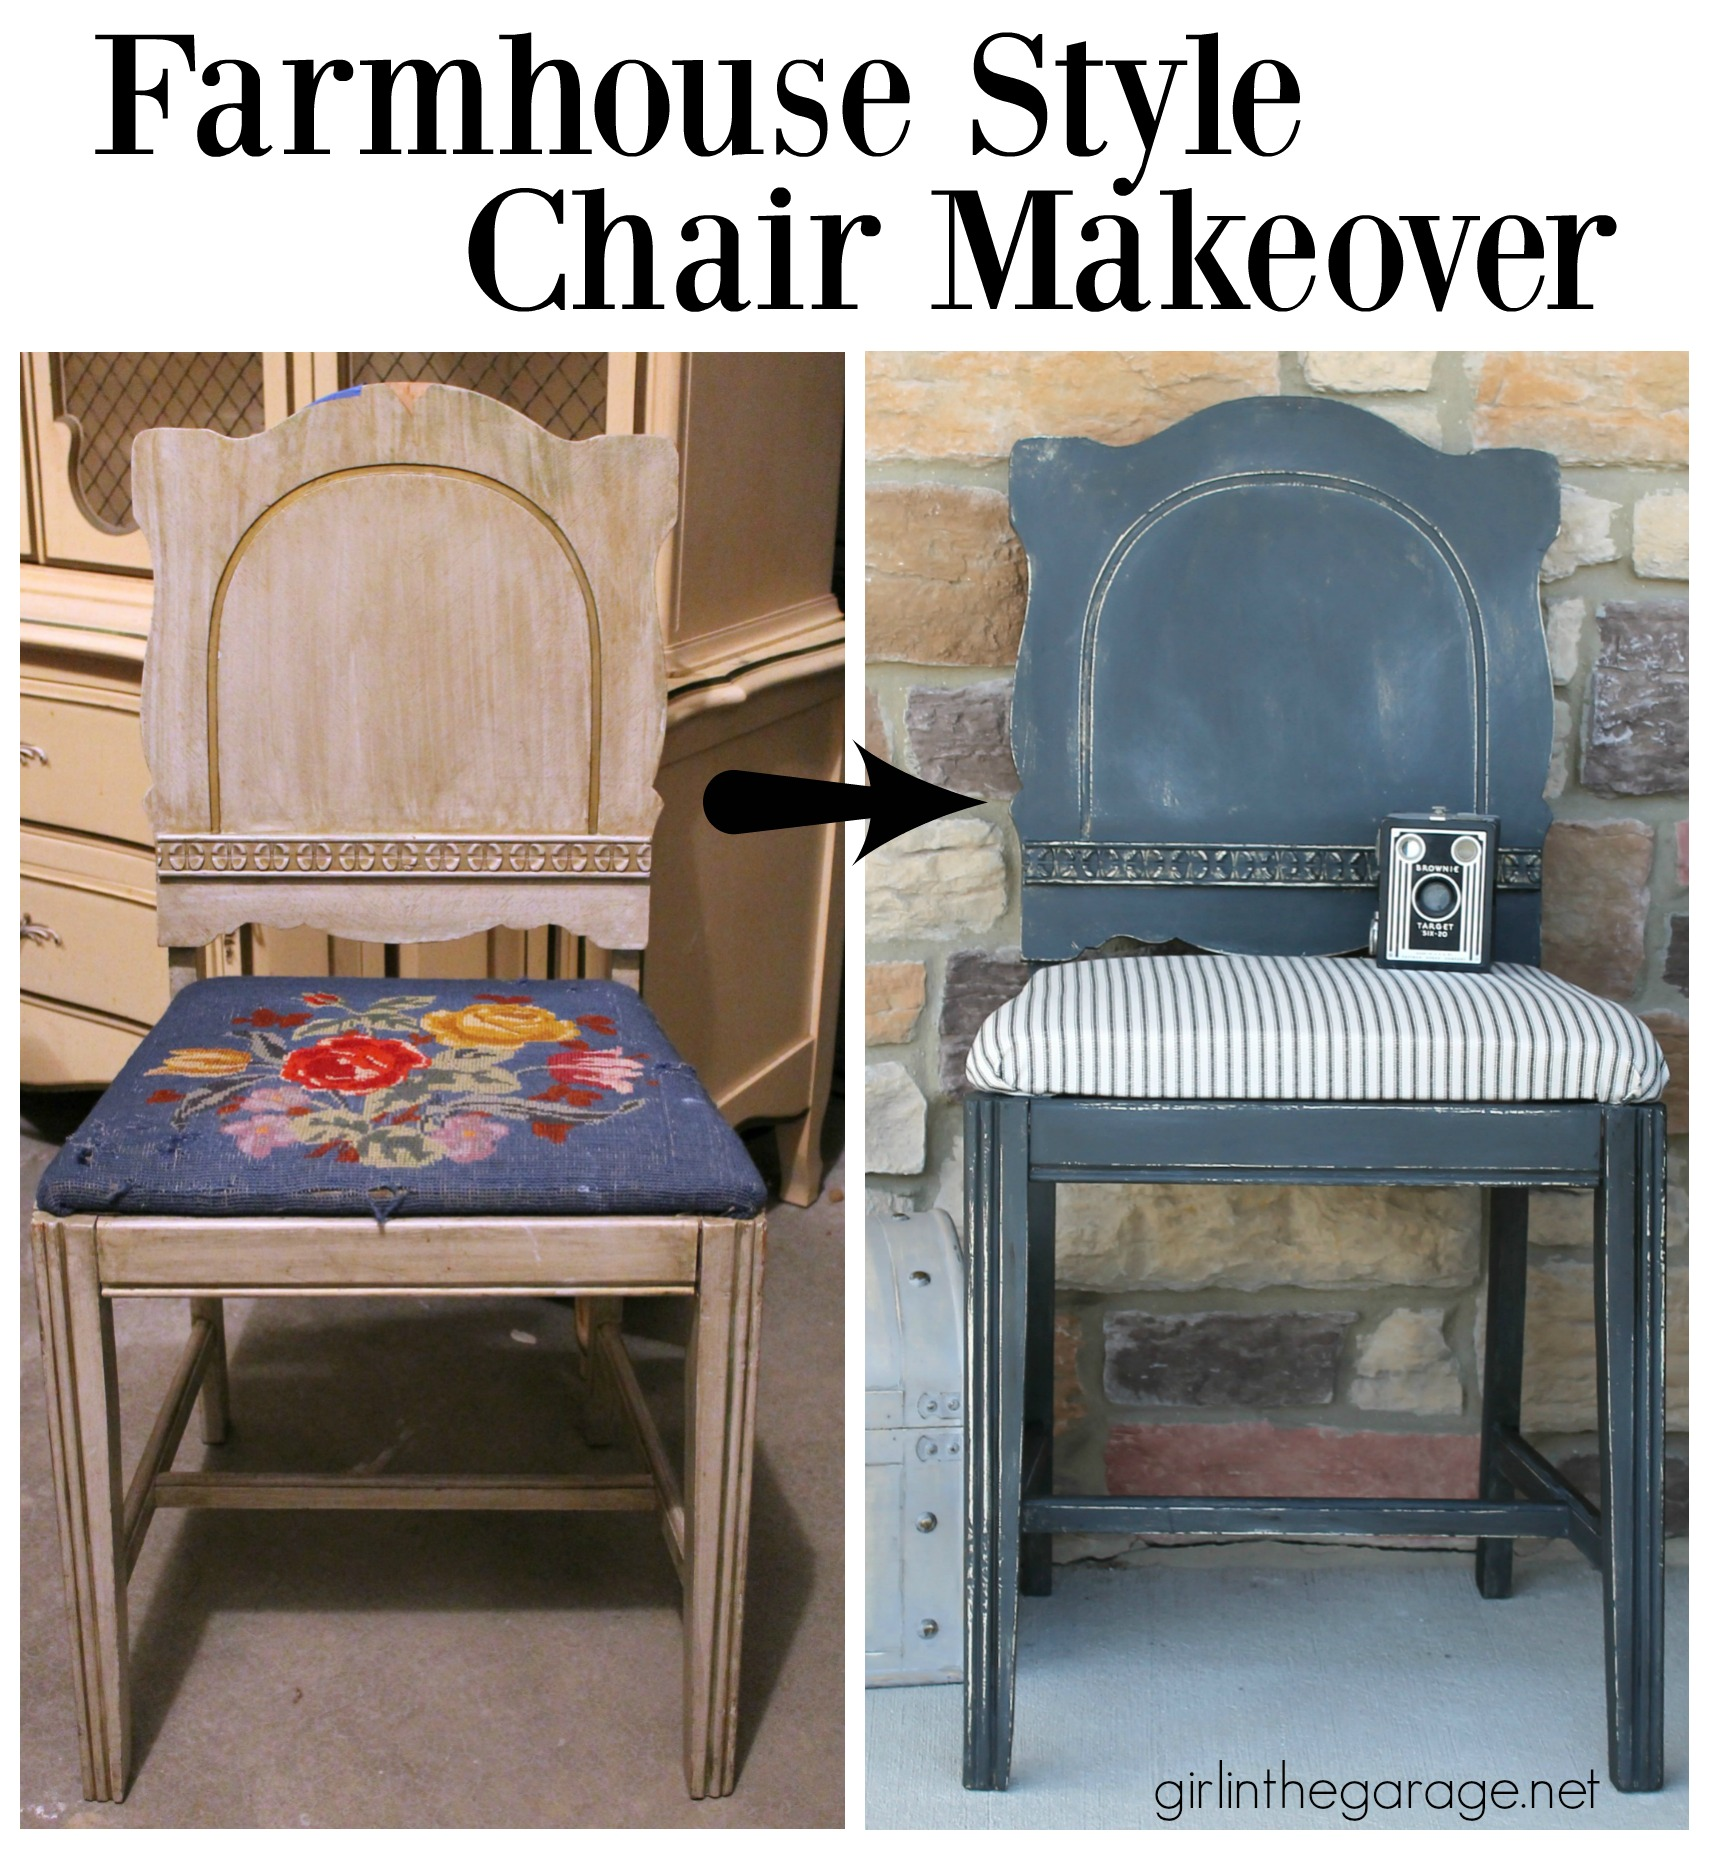 Farmhouse Chair Makeover with Chalk Paint and Ticking Fabric - Girl in the Garage